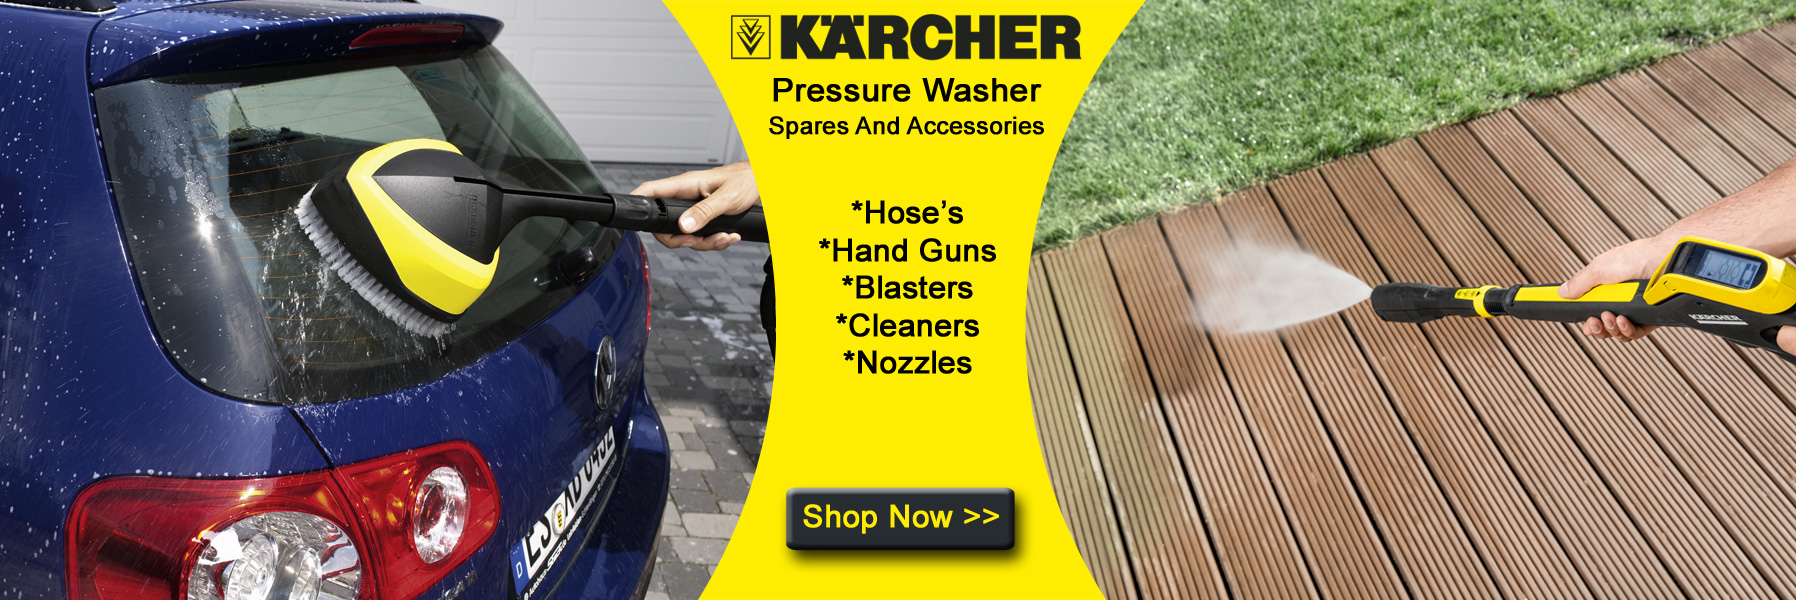 Karcher Spares And Accessories